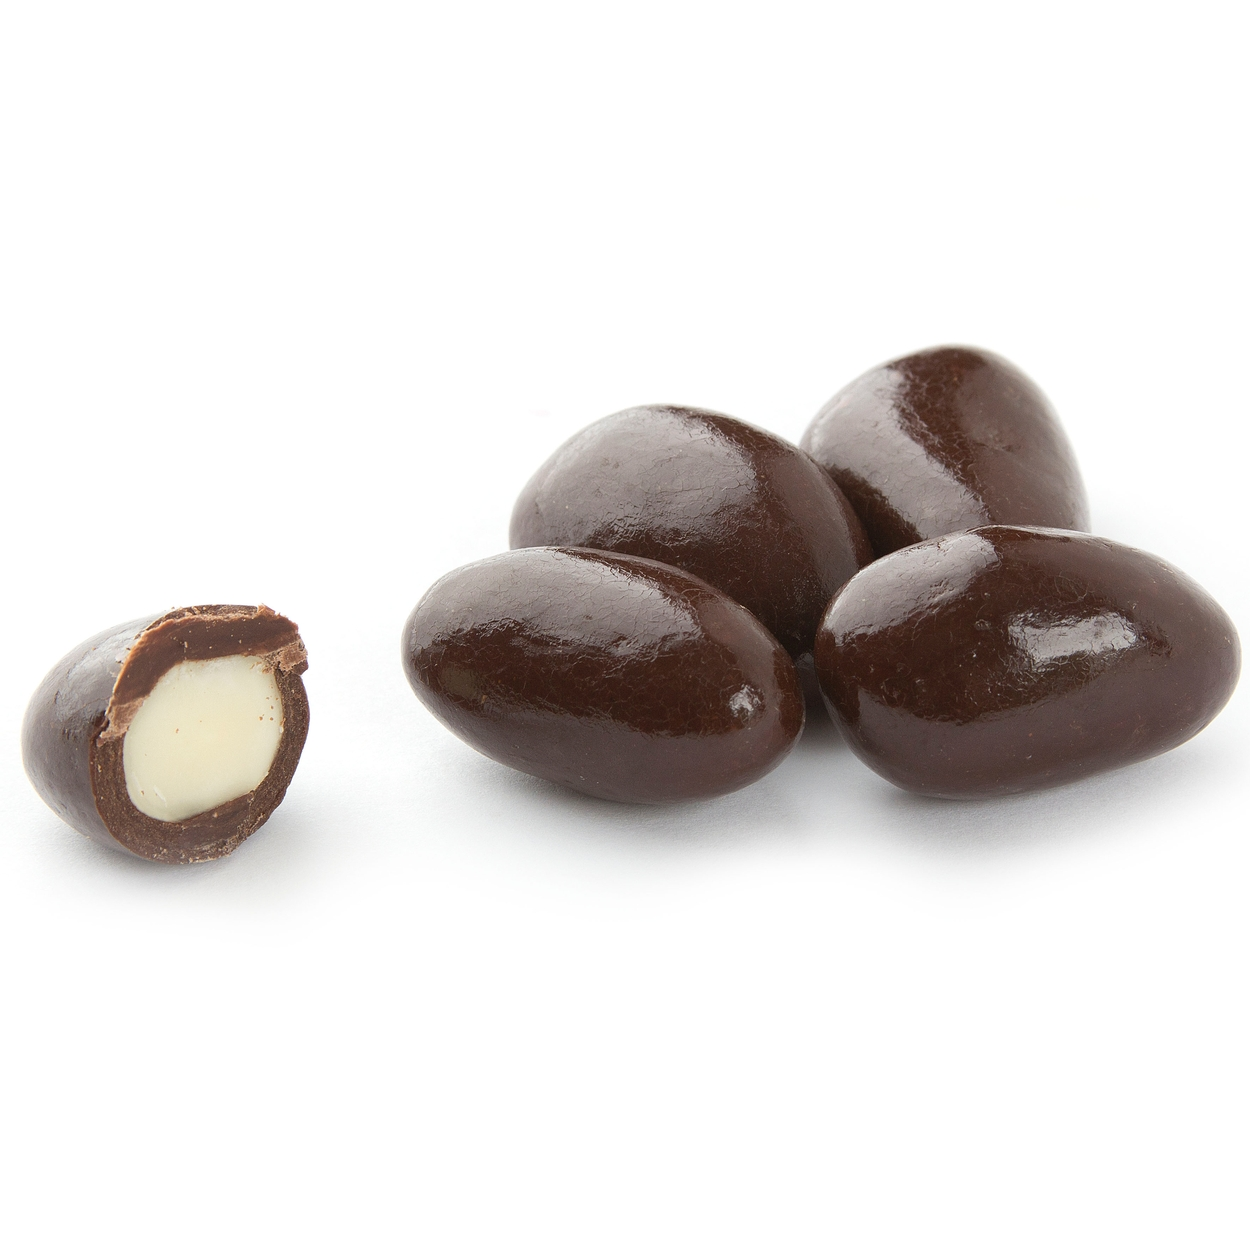 Chocolate Covered Nuts – Buy in Bulk By The Pound • Oh! Nuts®